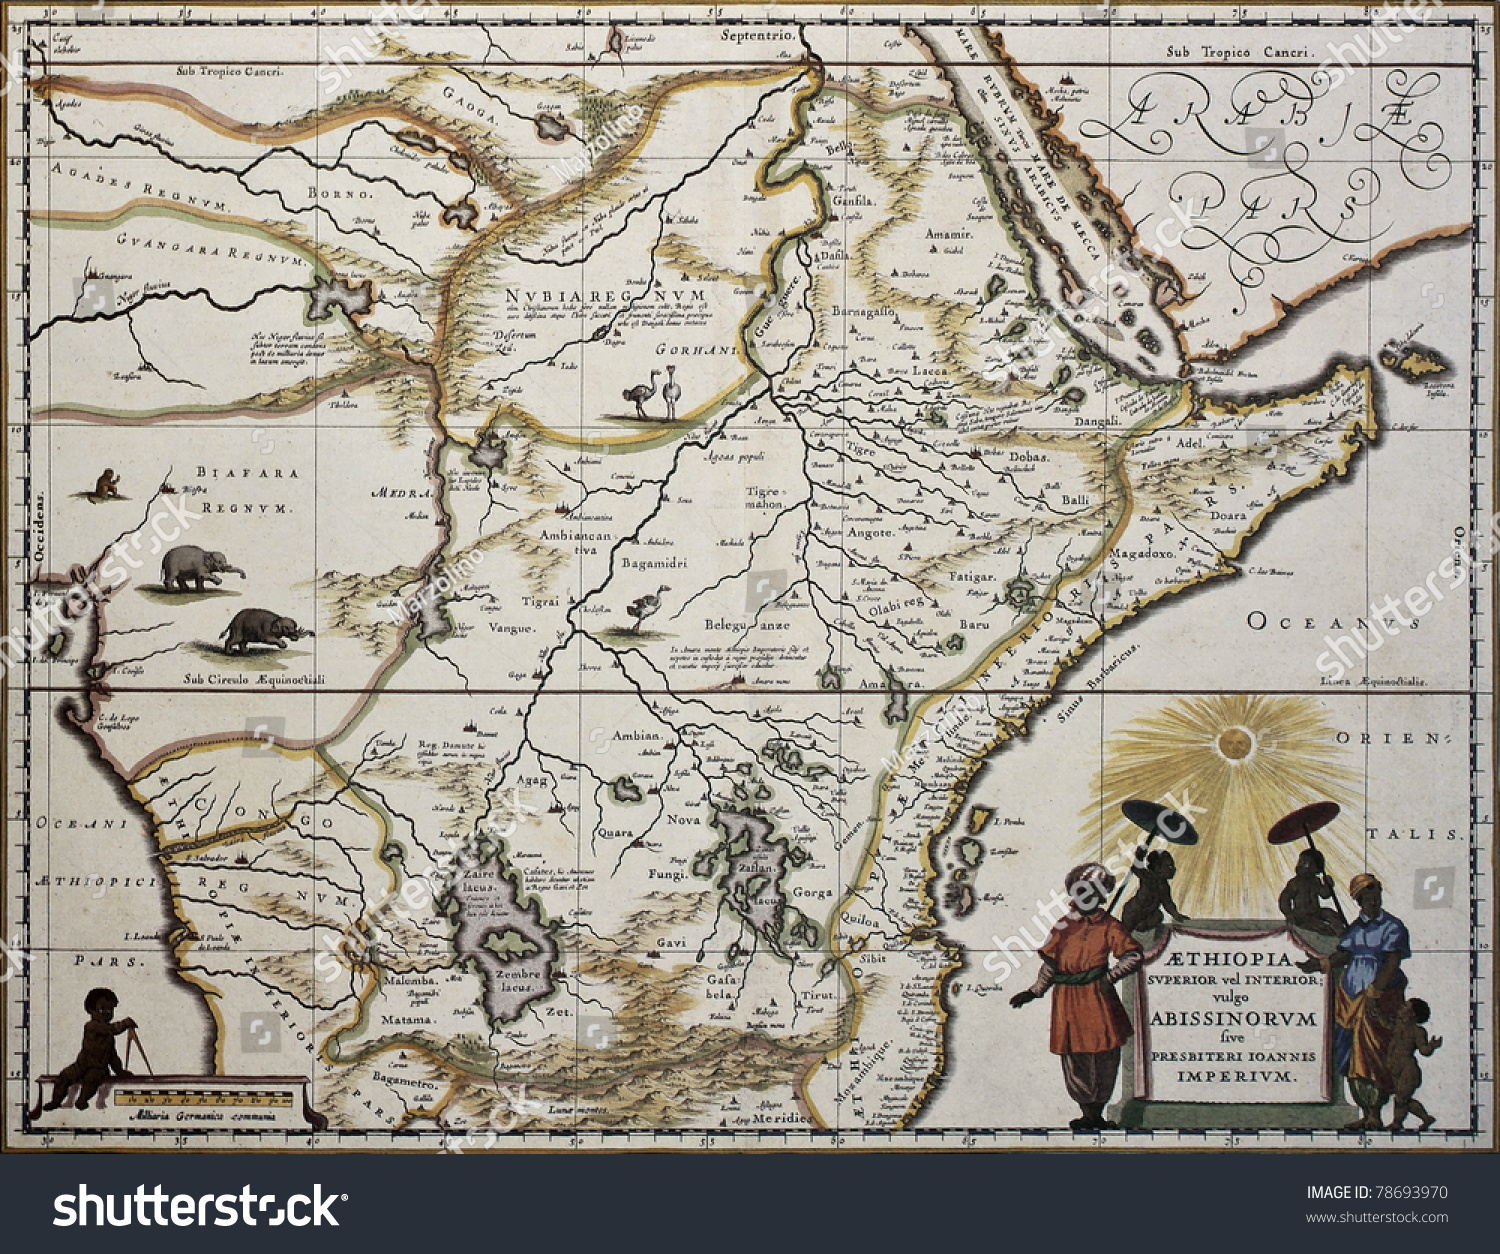 Ethiopia Old Map Created By Joan Stock Photo Shutterstock - Map sweden 1650